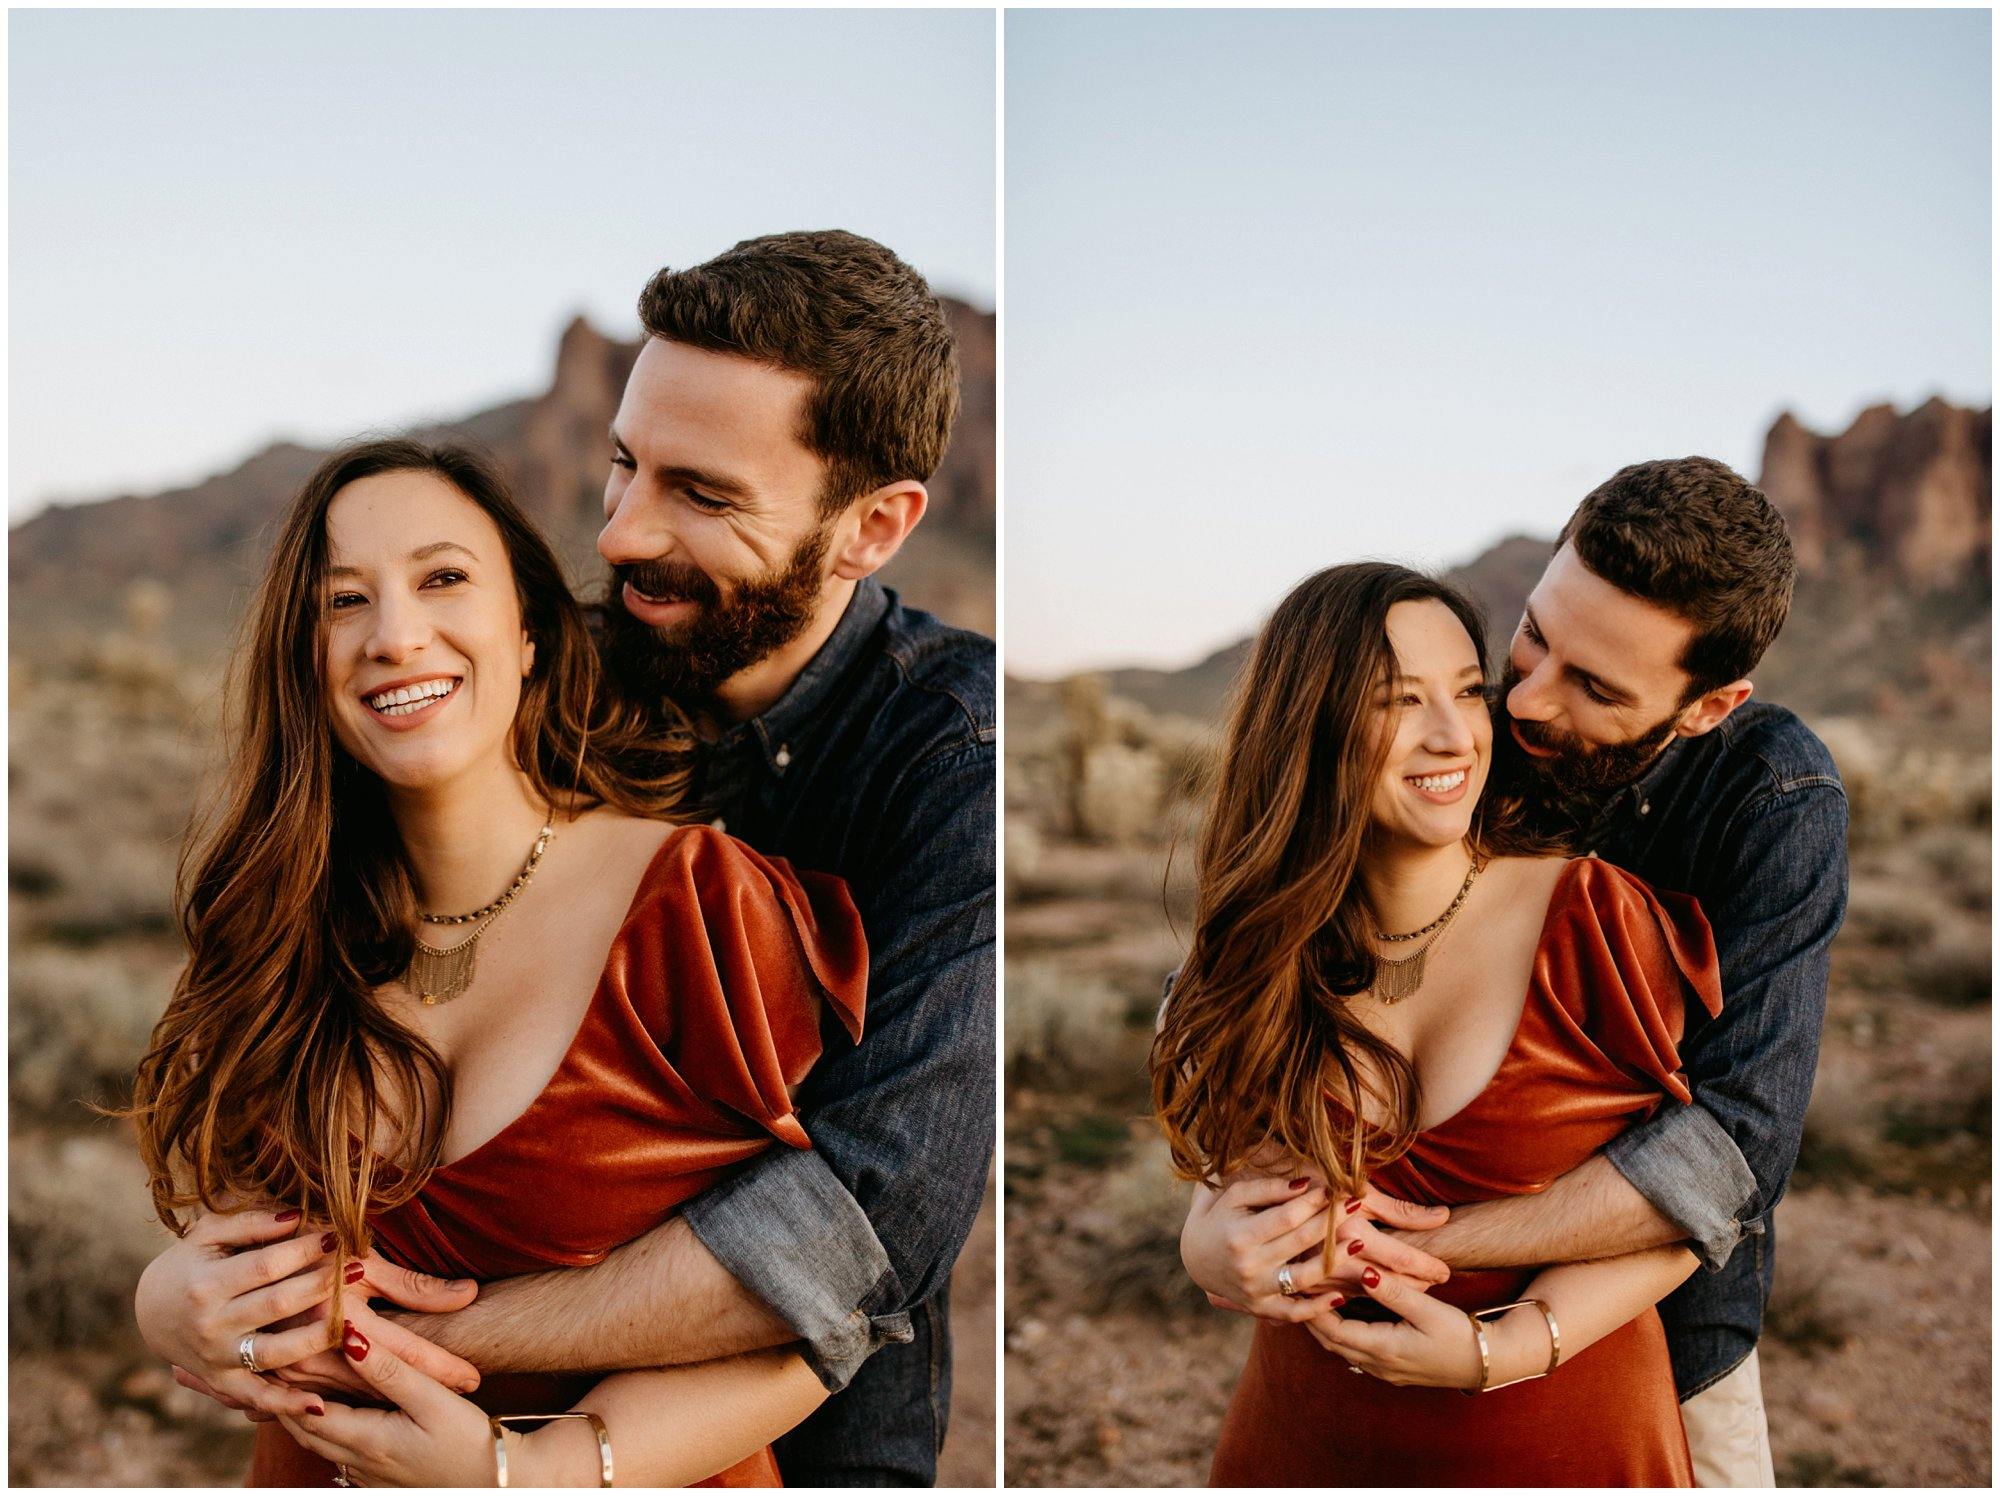 Arizona Desert Engagement Session - Megan + Geno - Ashtyn Nicole Photo_0034.jpg